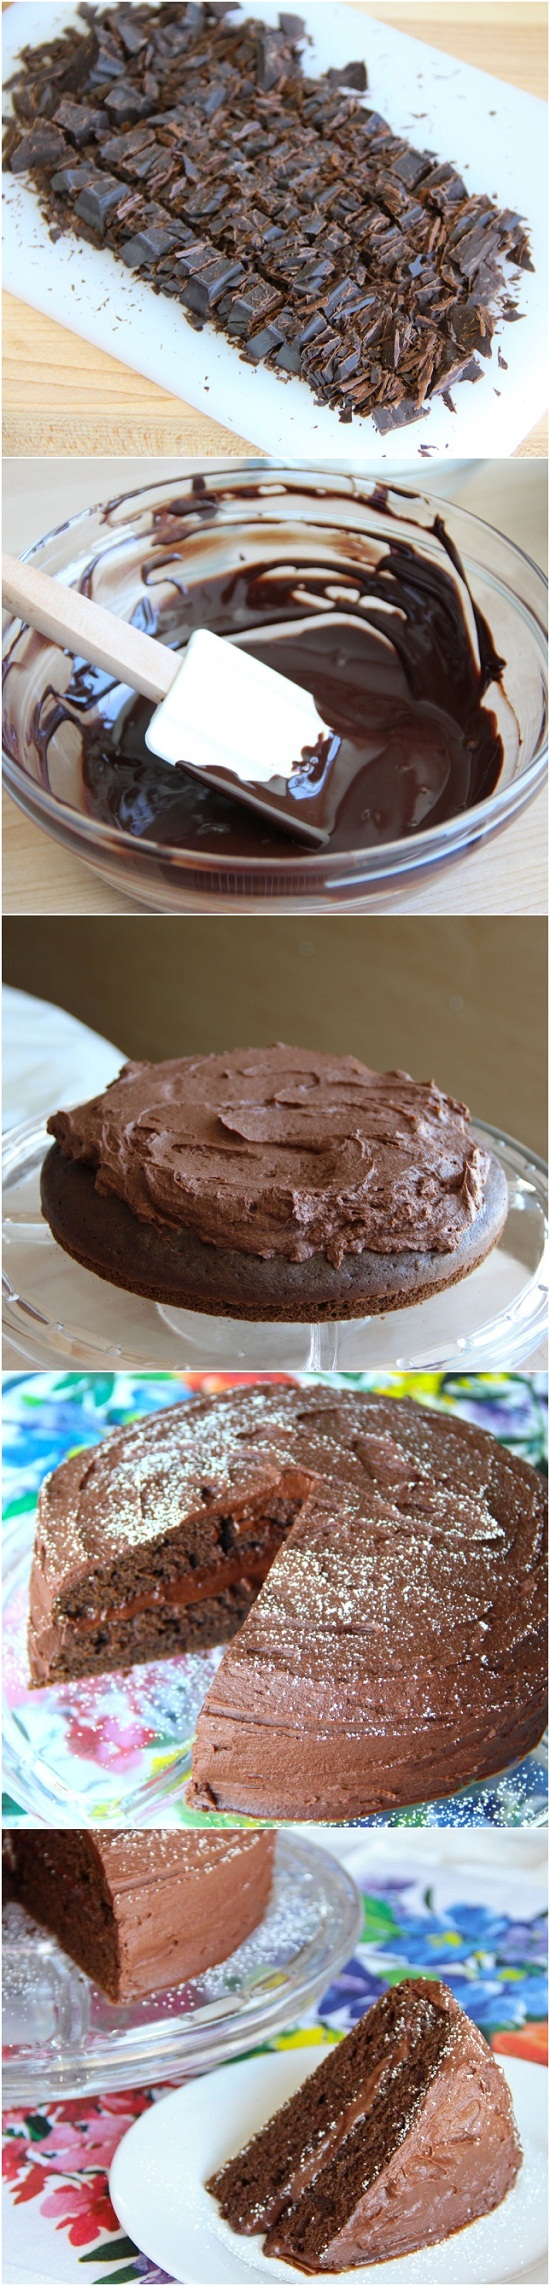 Amazing-Chocolate-cake-recipe